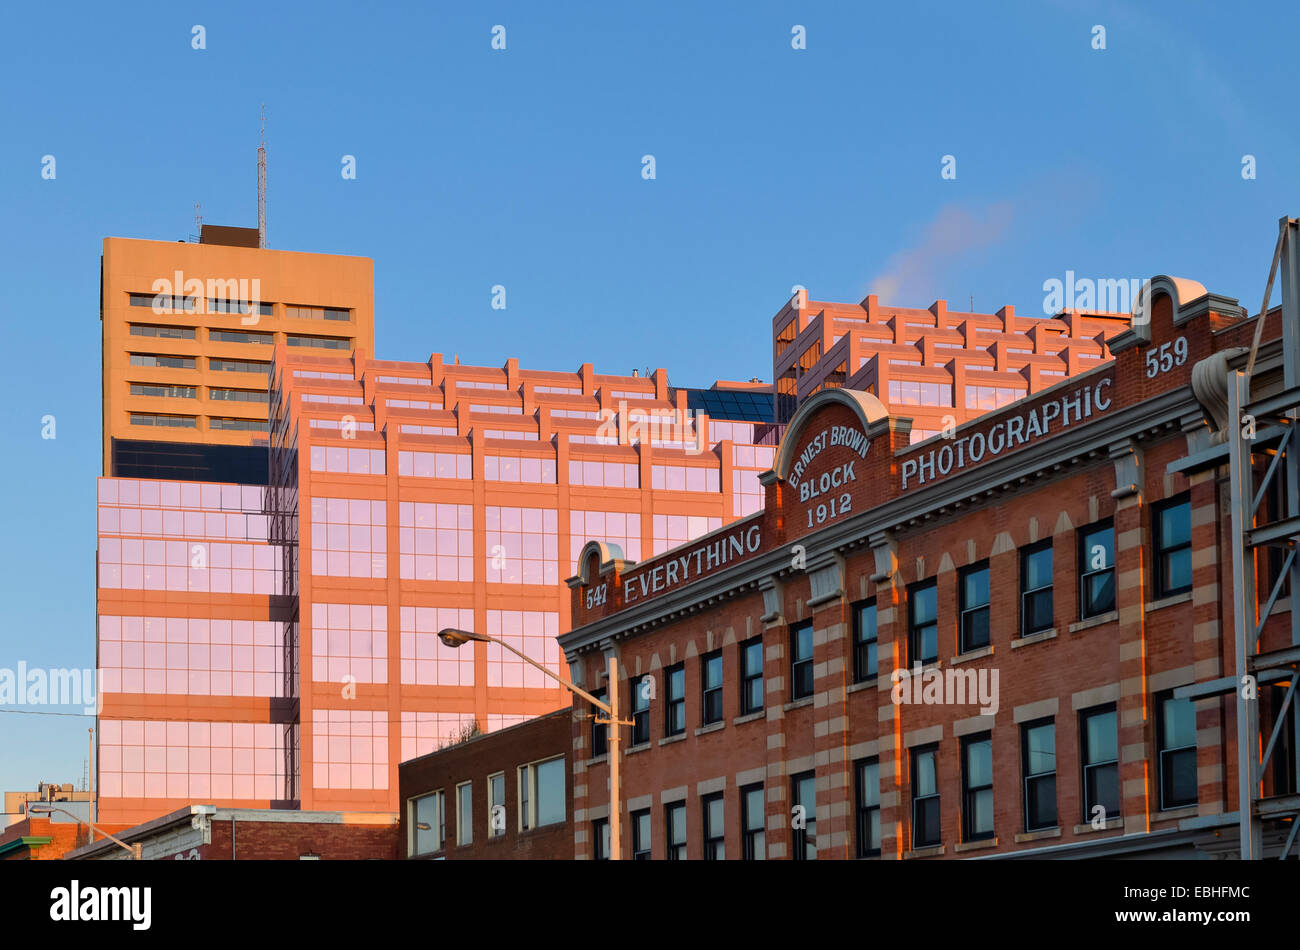 Everything Photographic, an old brick building contrasts with modern Canada Place. Edmonton, Alberta, Canada - Stock Image